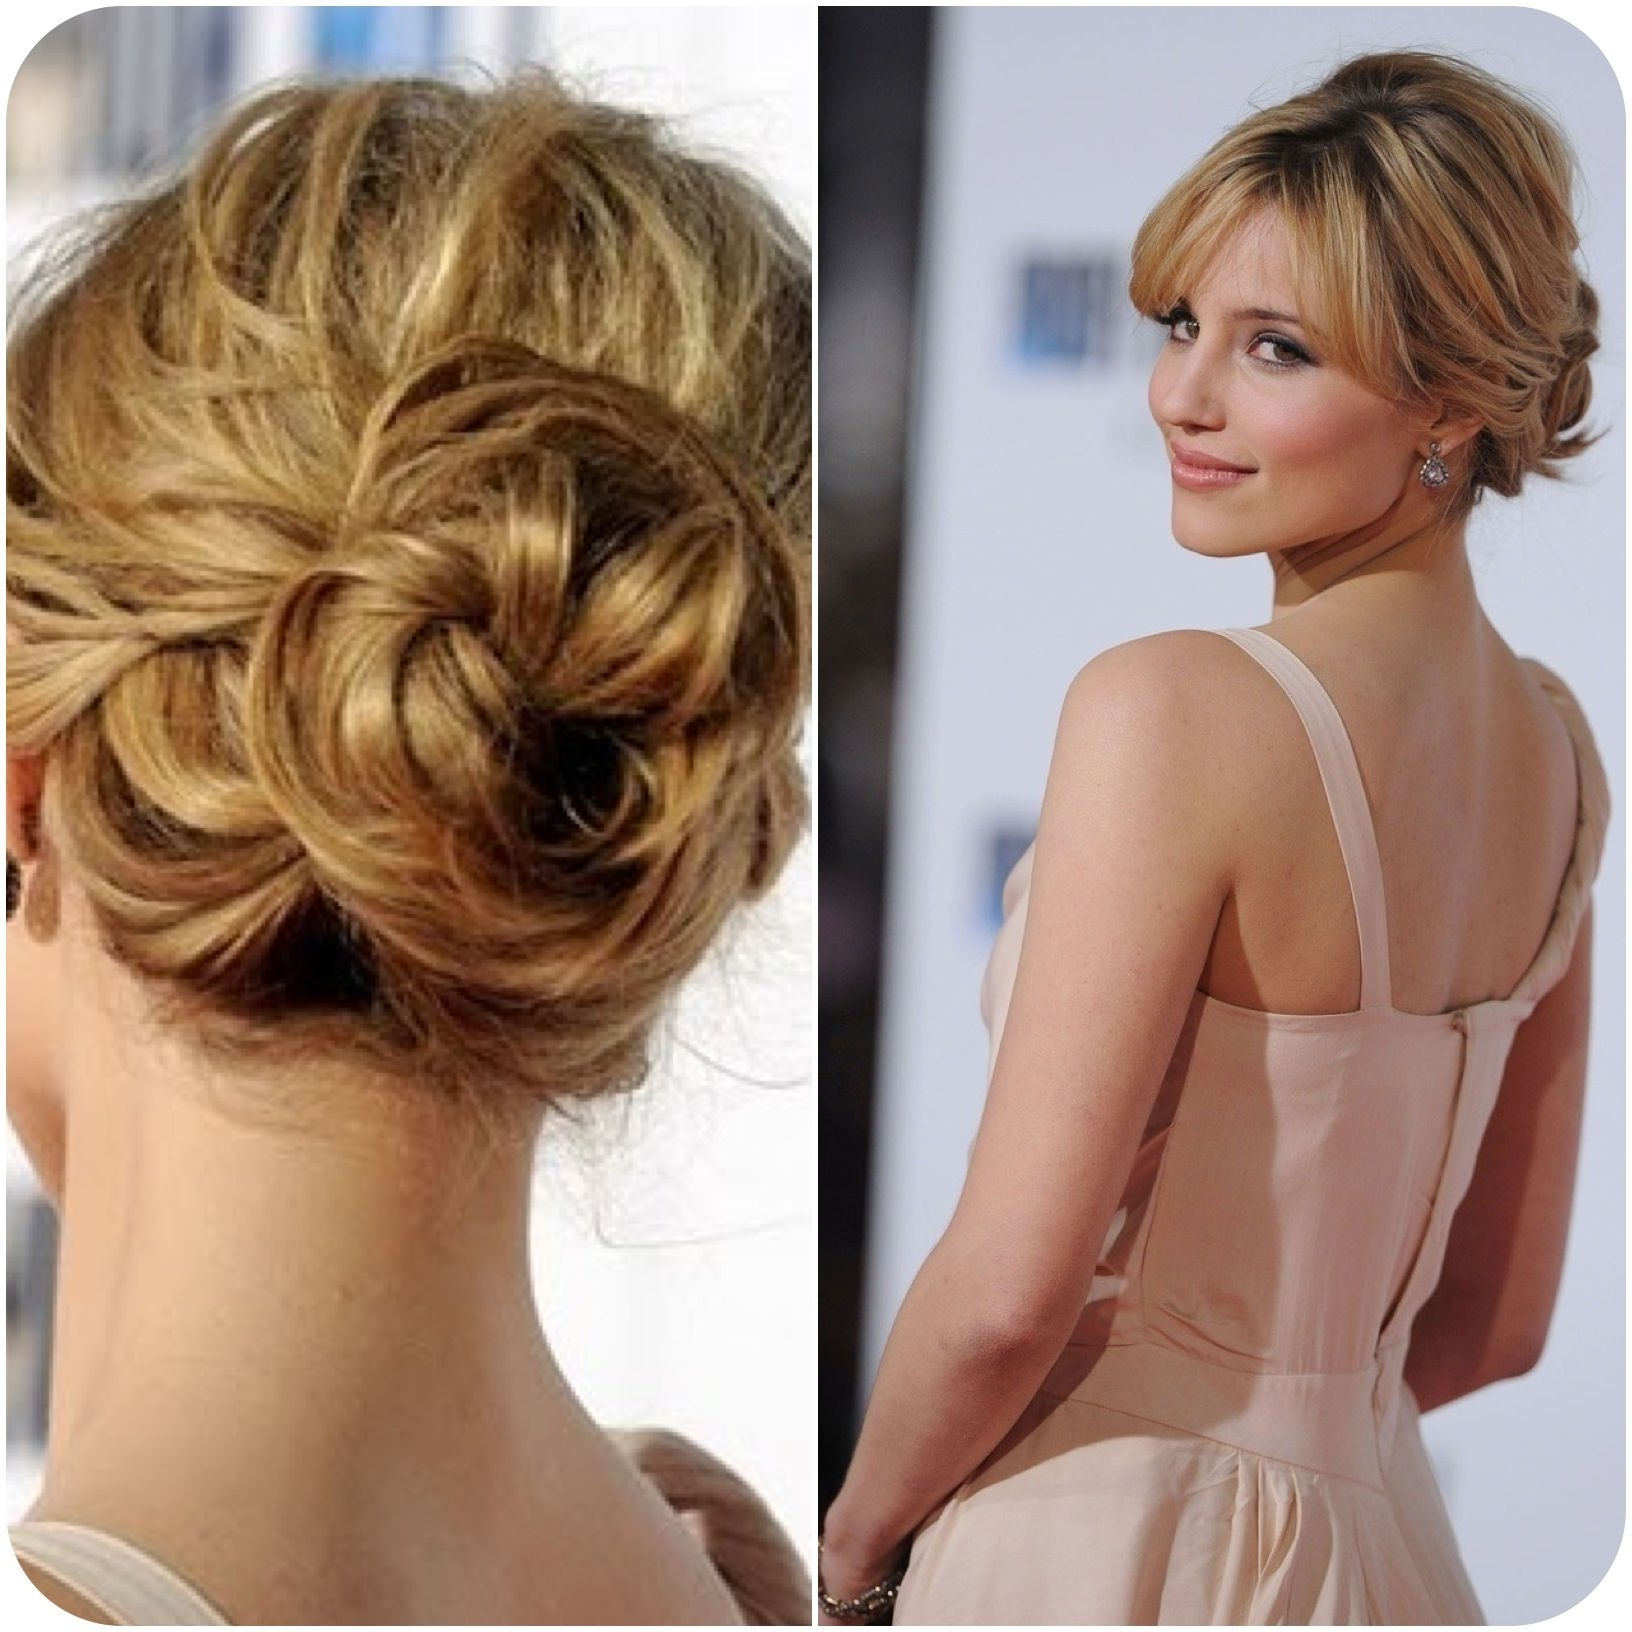 Dianna Agron Romantic Updo With Bangs | Hair | Pinterest | Dianna Throughout Romantic Updo Hairstyles (Gallery 5 of 15)